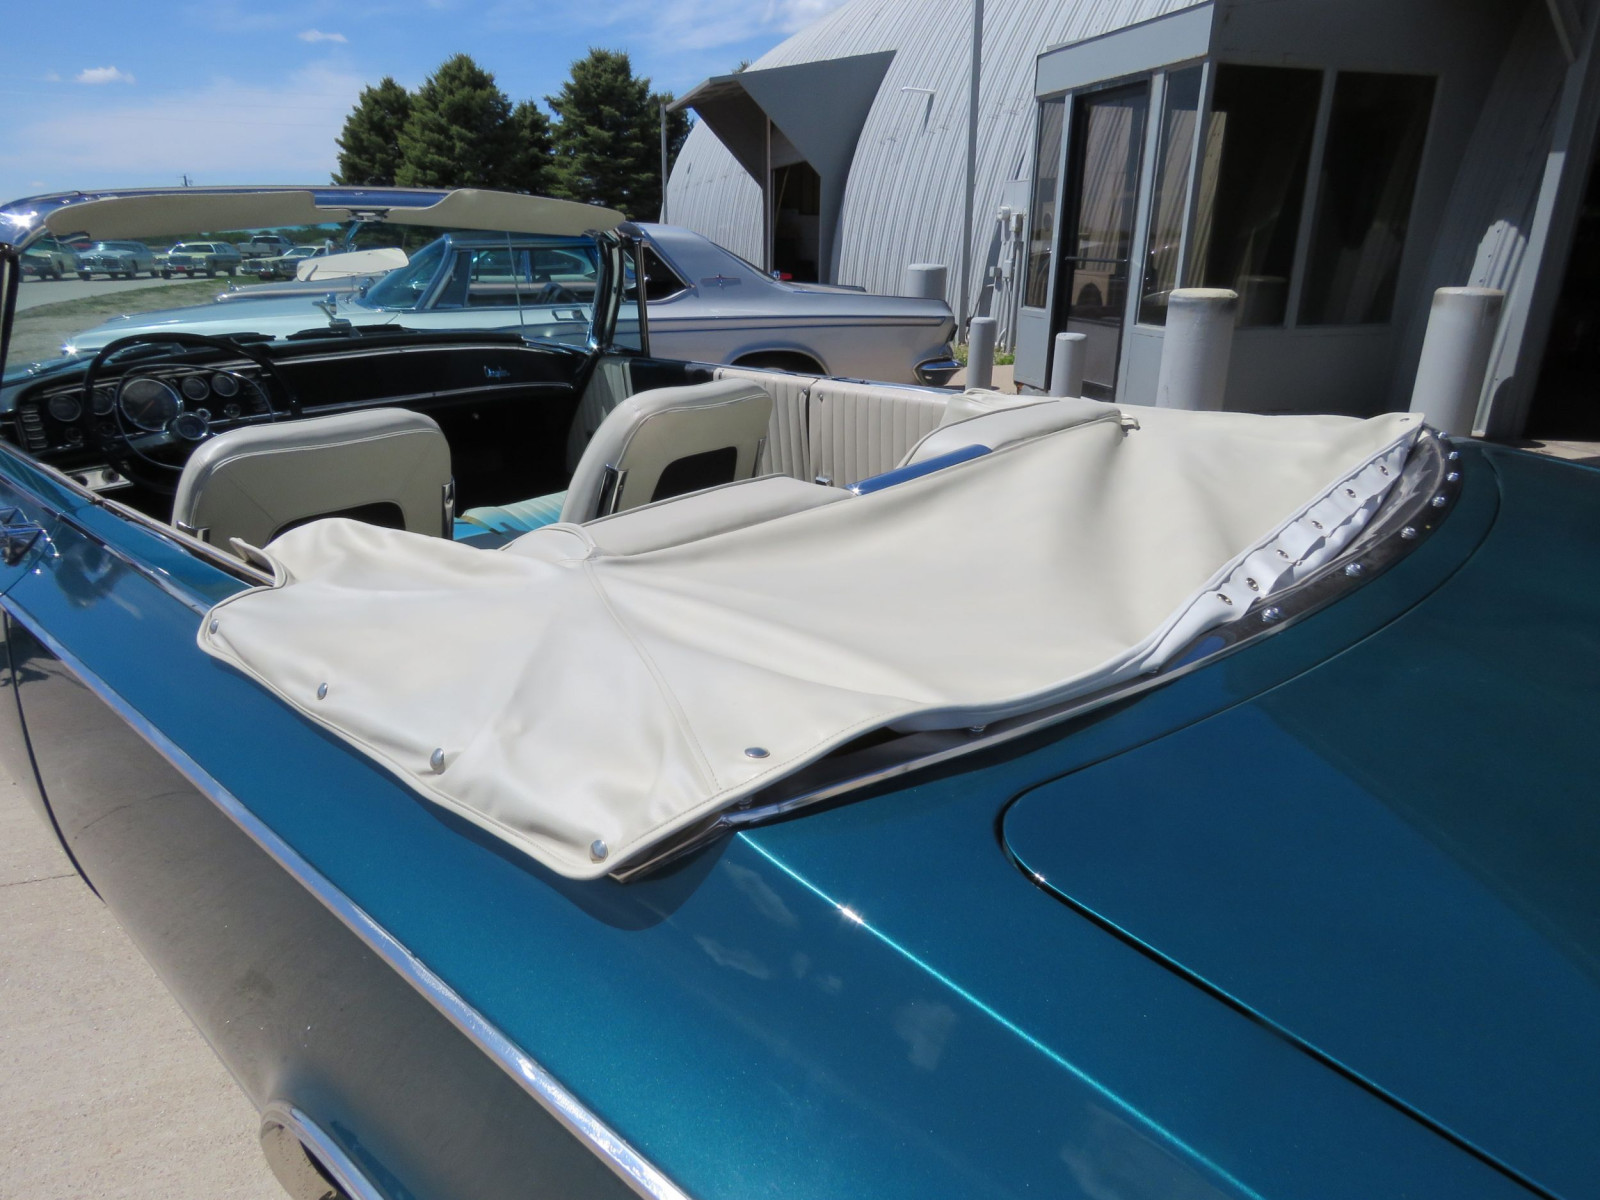 RARE 1963 Chrysler 300 Pace Setter Convertible Indy 500 Pace car - Image 11